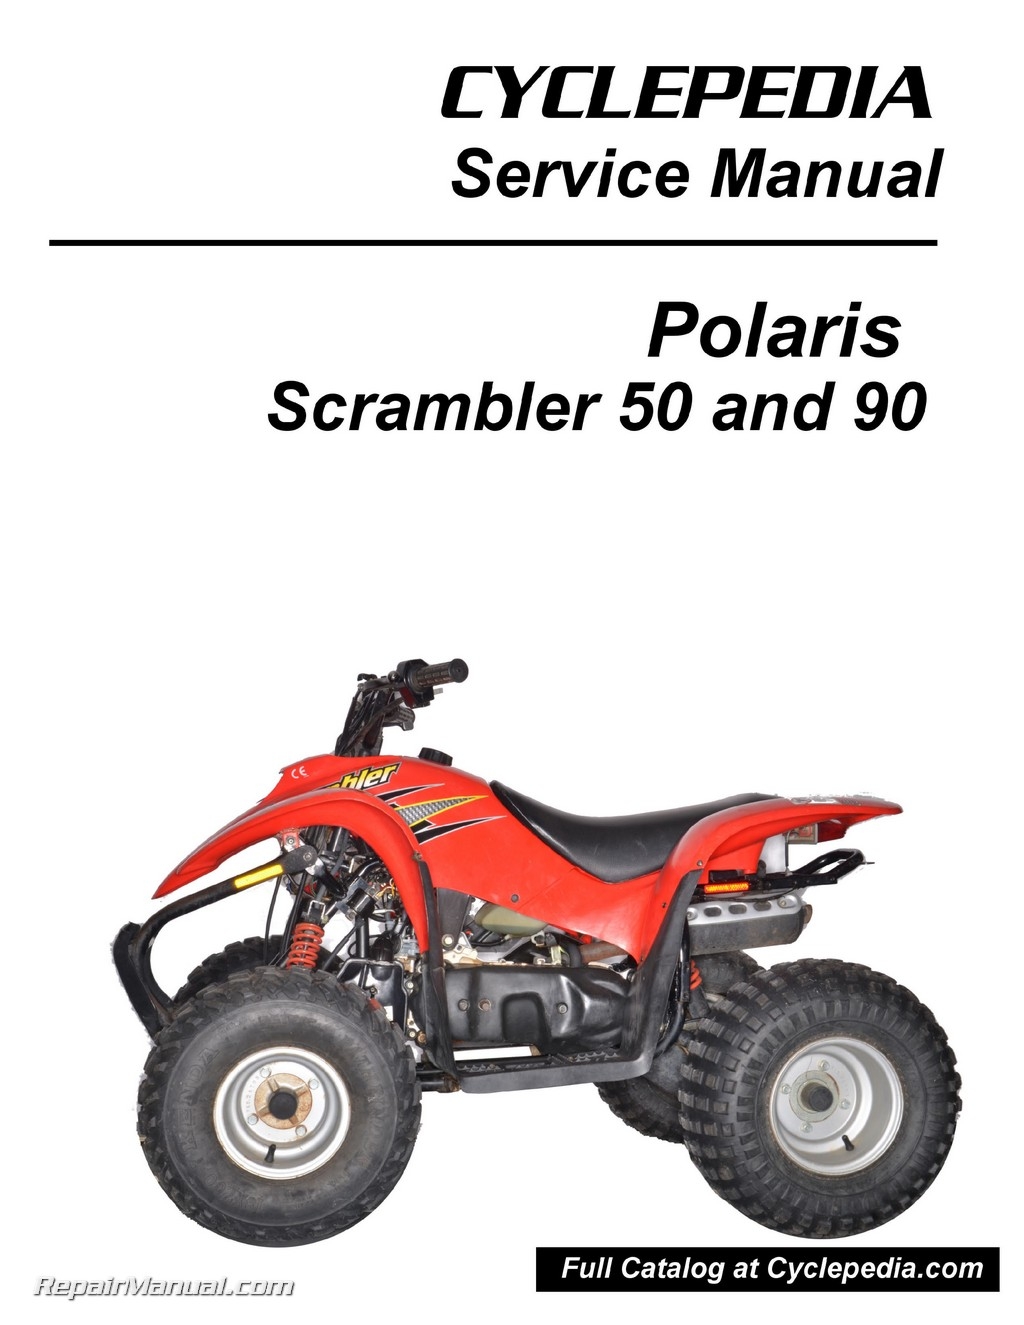 polaris 50cc 90cc scrambler atv print service manual by cyclepedia rh repairmanual com polaris ranger 6x6 workshop manual 2014 polaris ranger 6x6 service manual